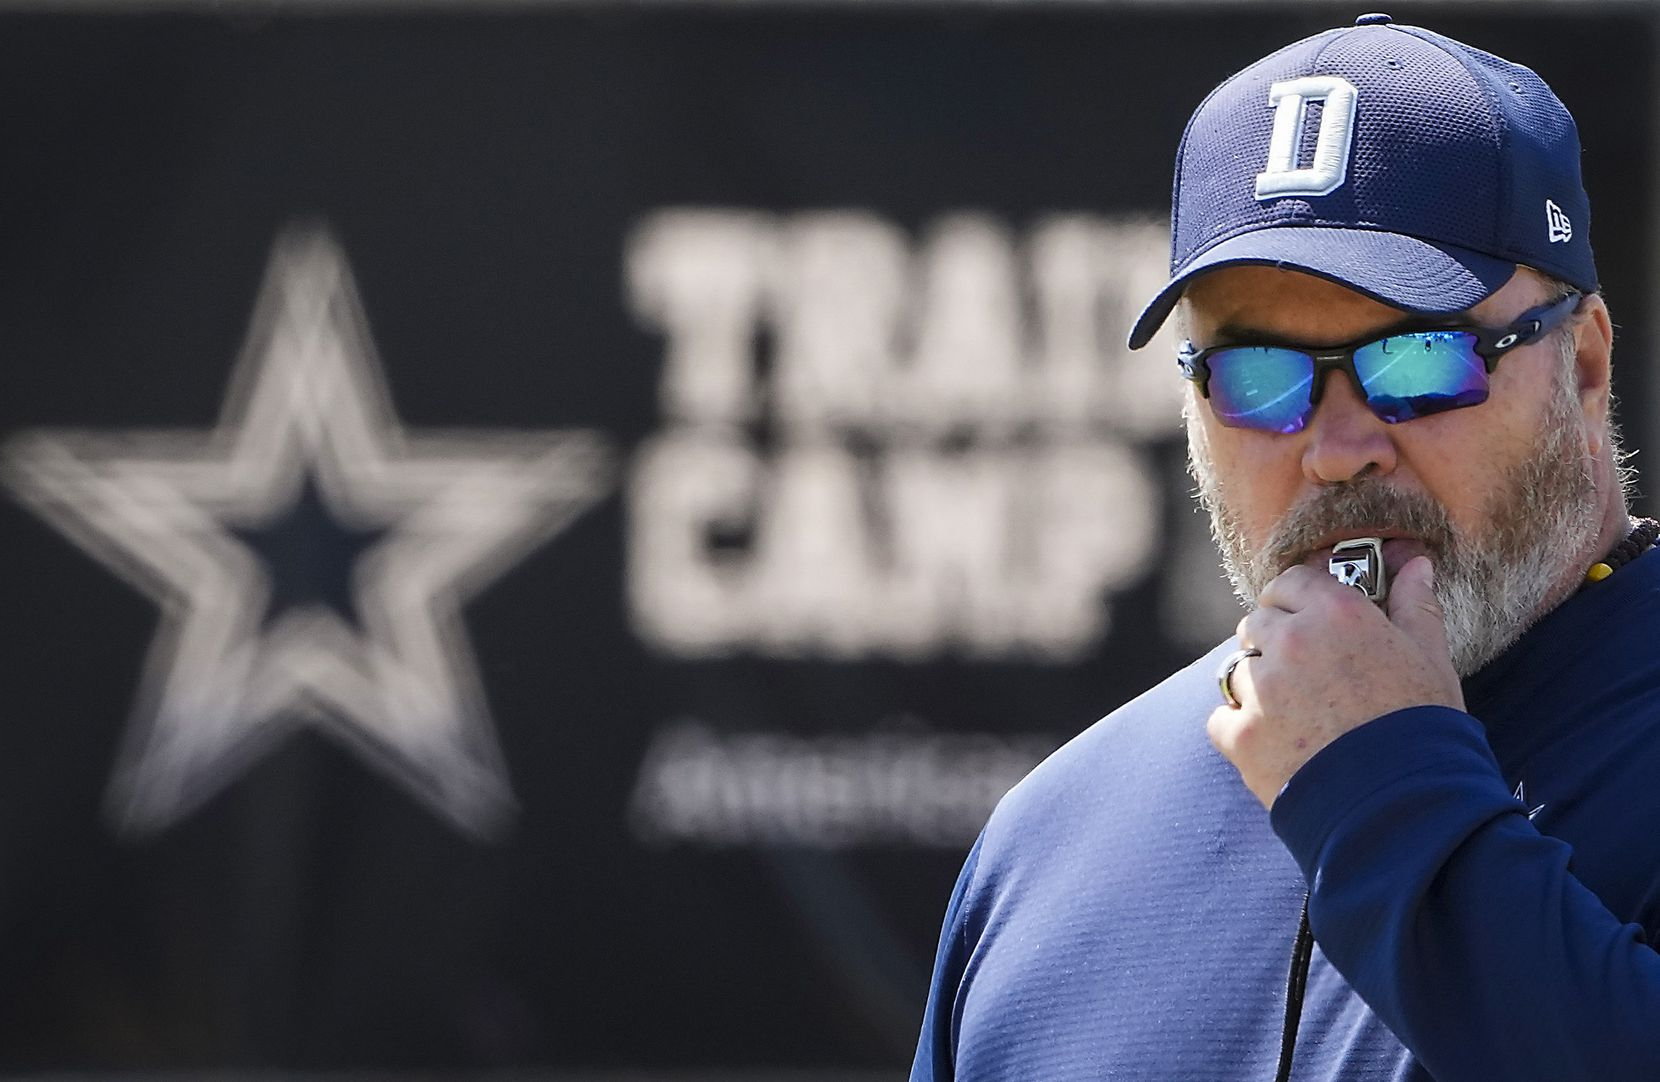 Dallas Cowboys head coach Mike McCarthy blows a whistle during a practice at training camp on Tuesday, Aug. 10, 2021, in Oxnard, Calif.